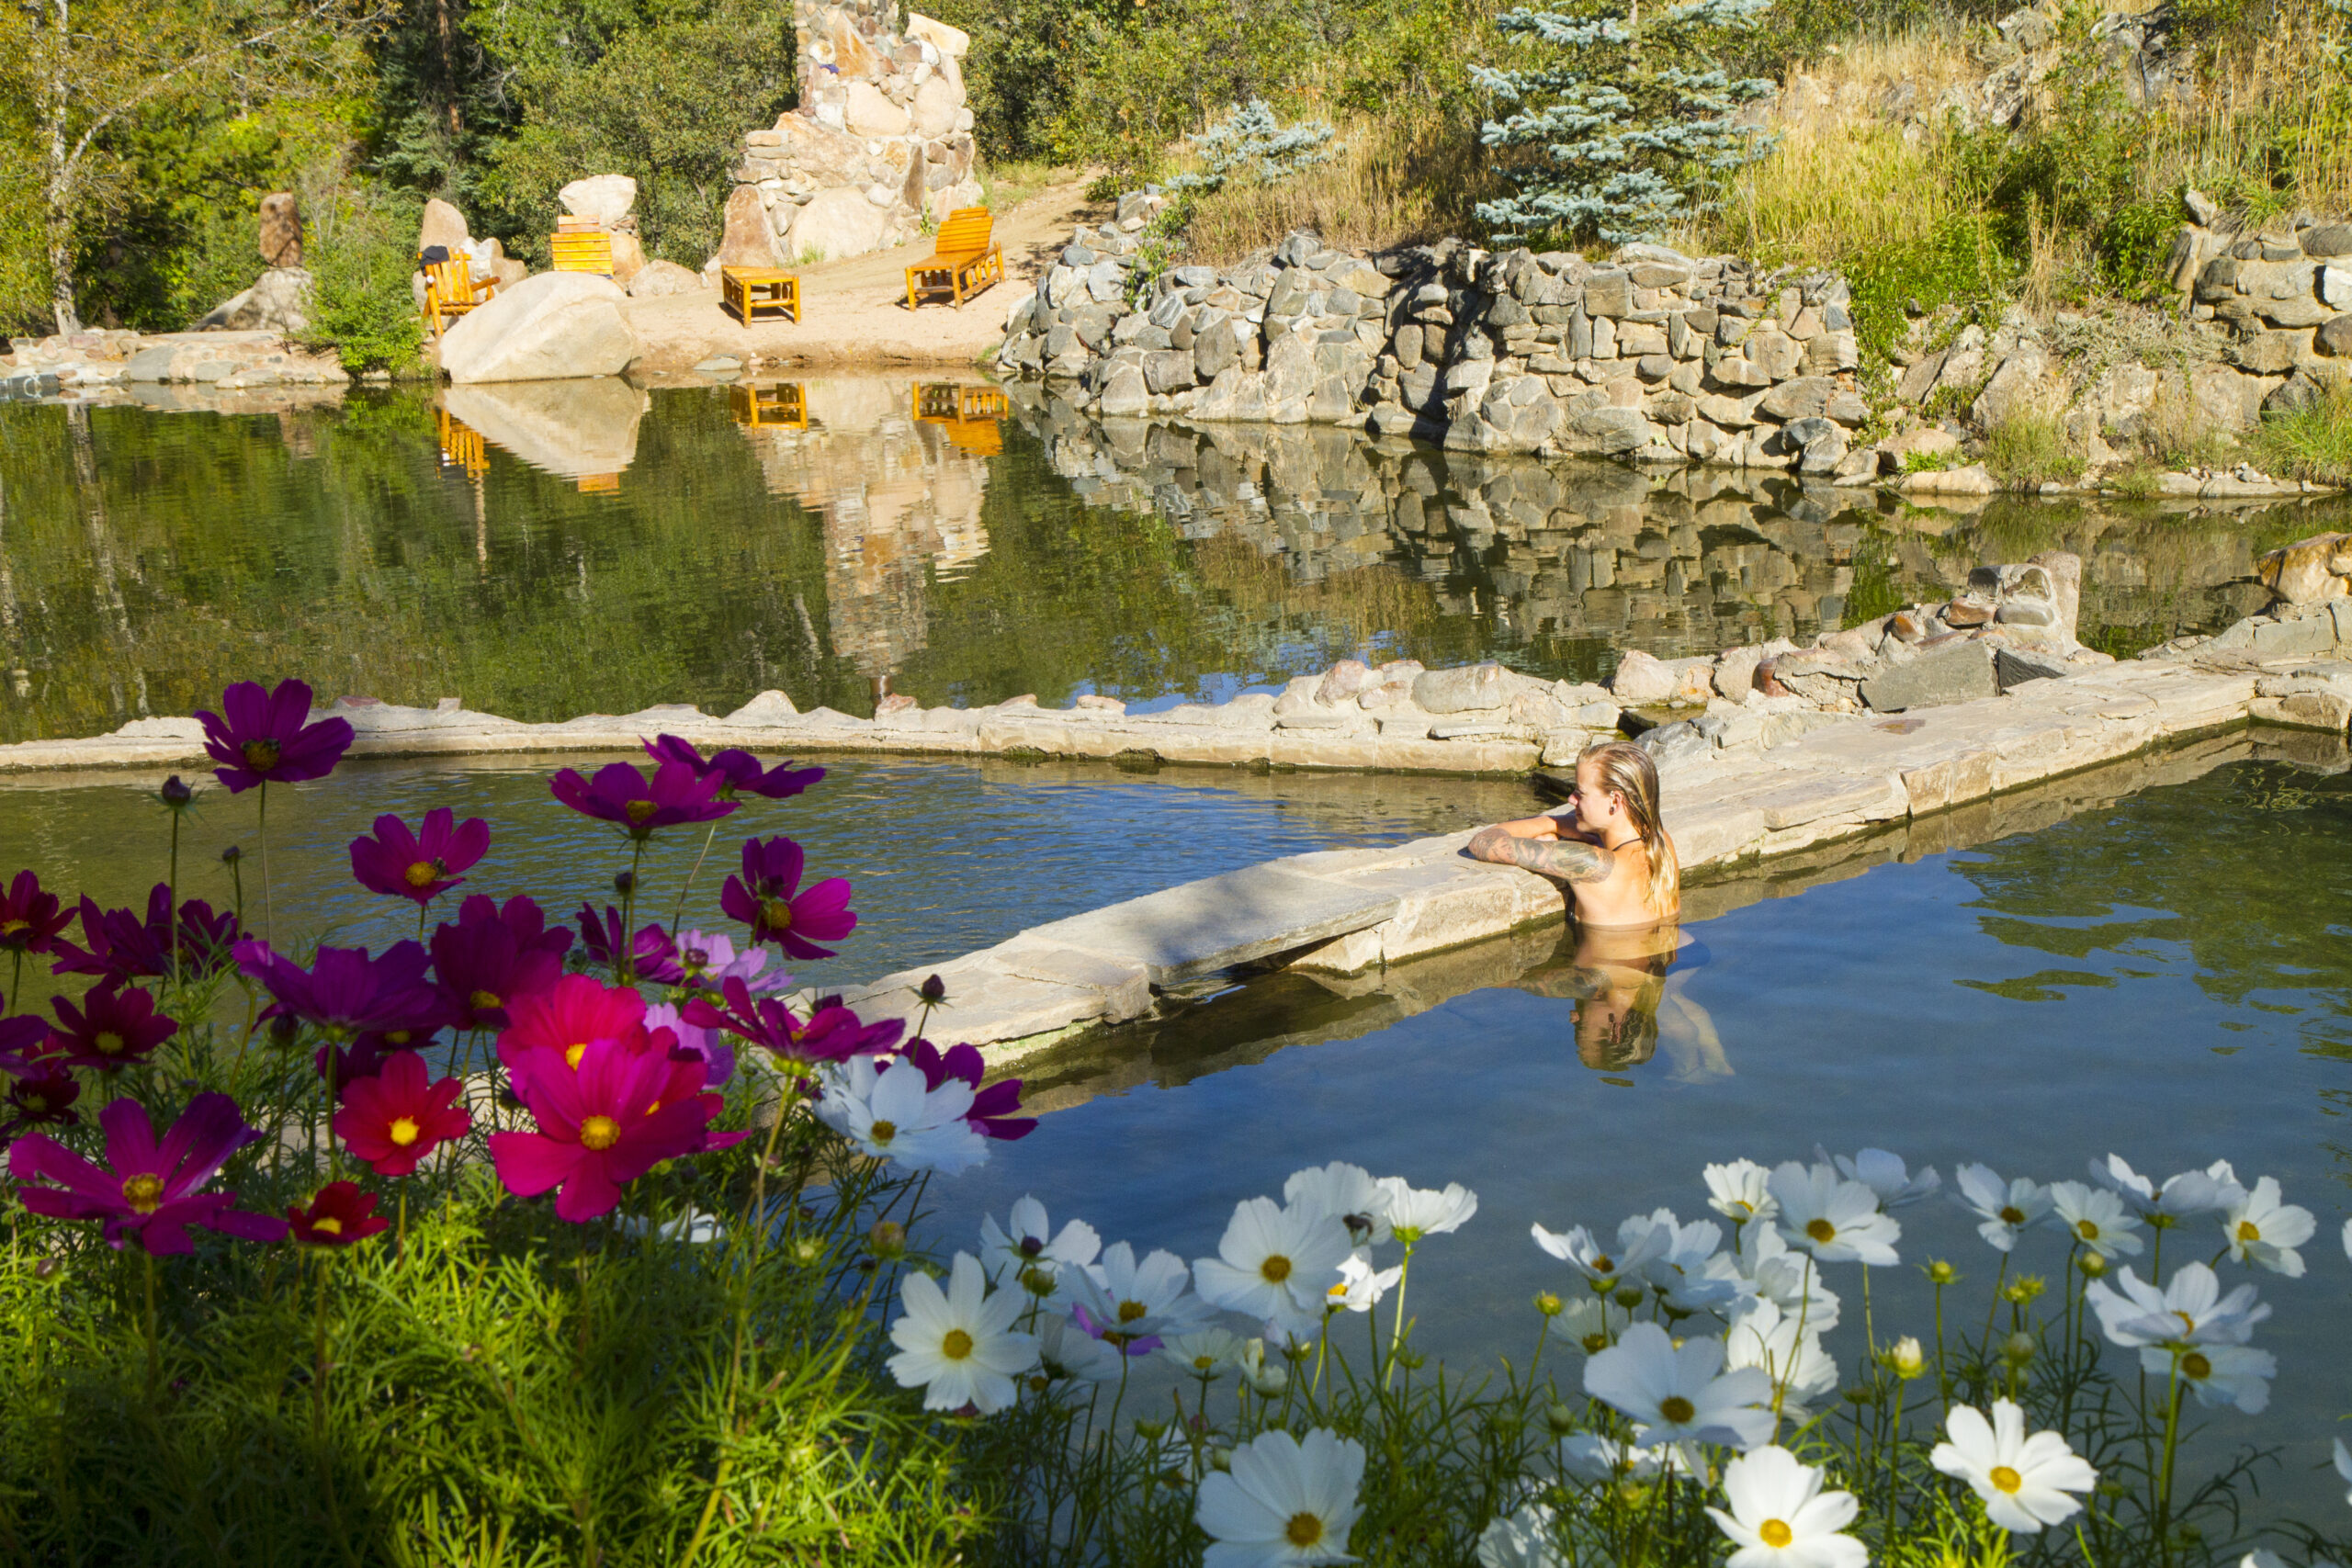 Strawberry Park Hot Springs in Steamboat Springs Photo Credit: Steamboat Springs Chamber / N WETZEL